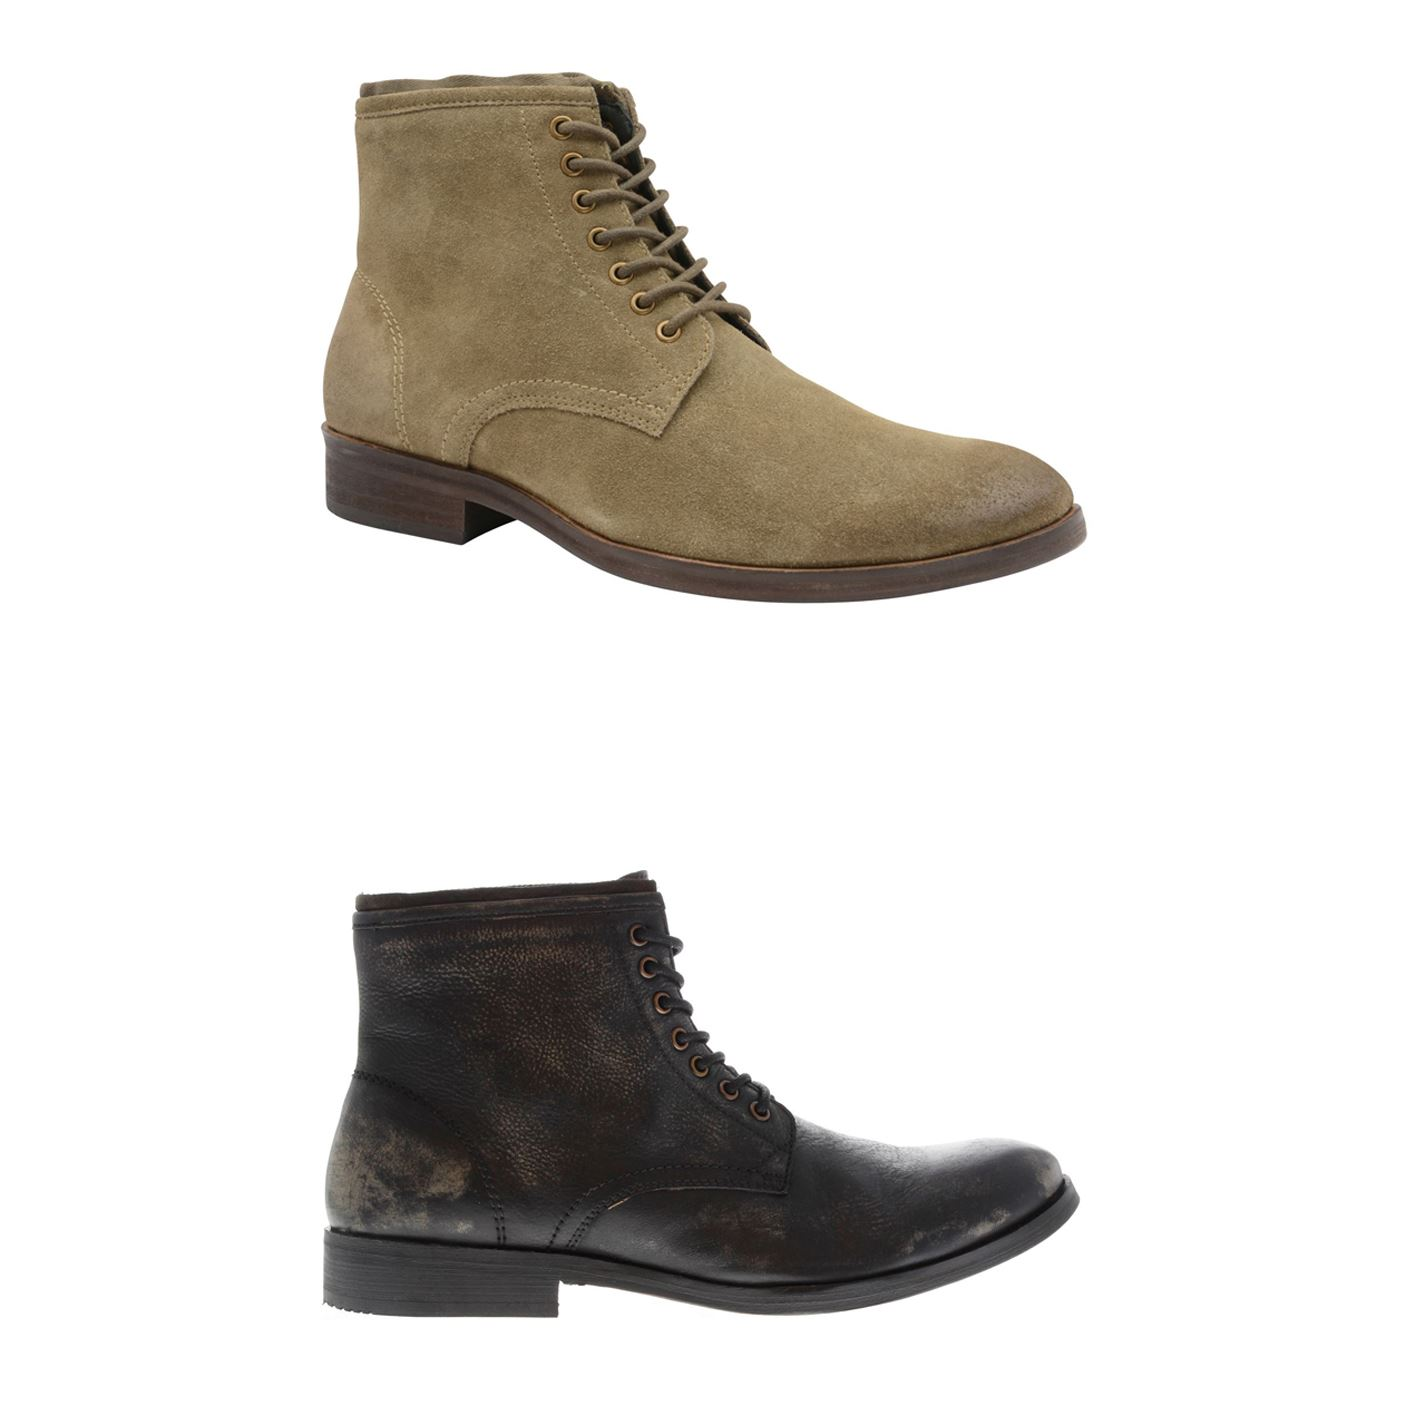 buy popular 38505 dadf6 Details about Frank Wright Clyde Ankle Boots Mens Shoes Footwear